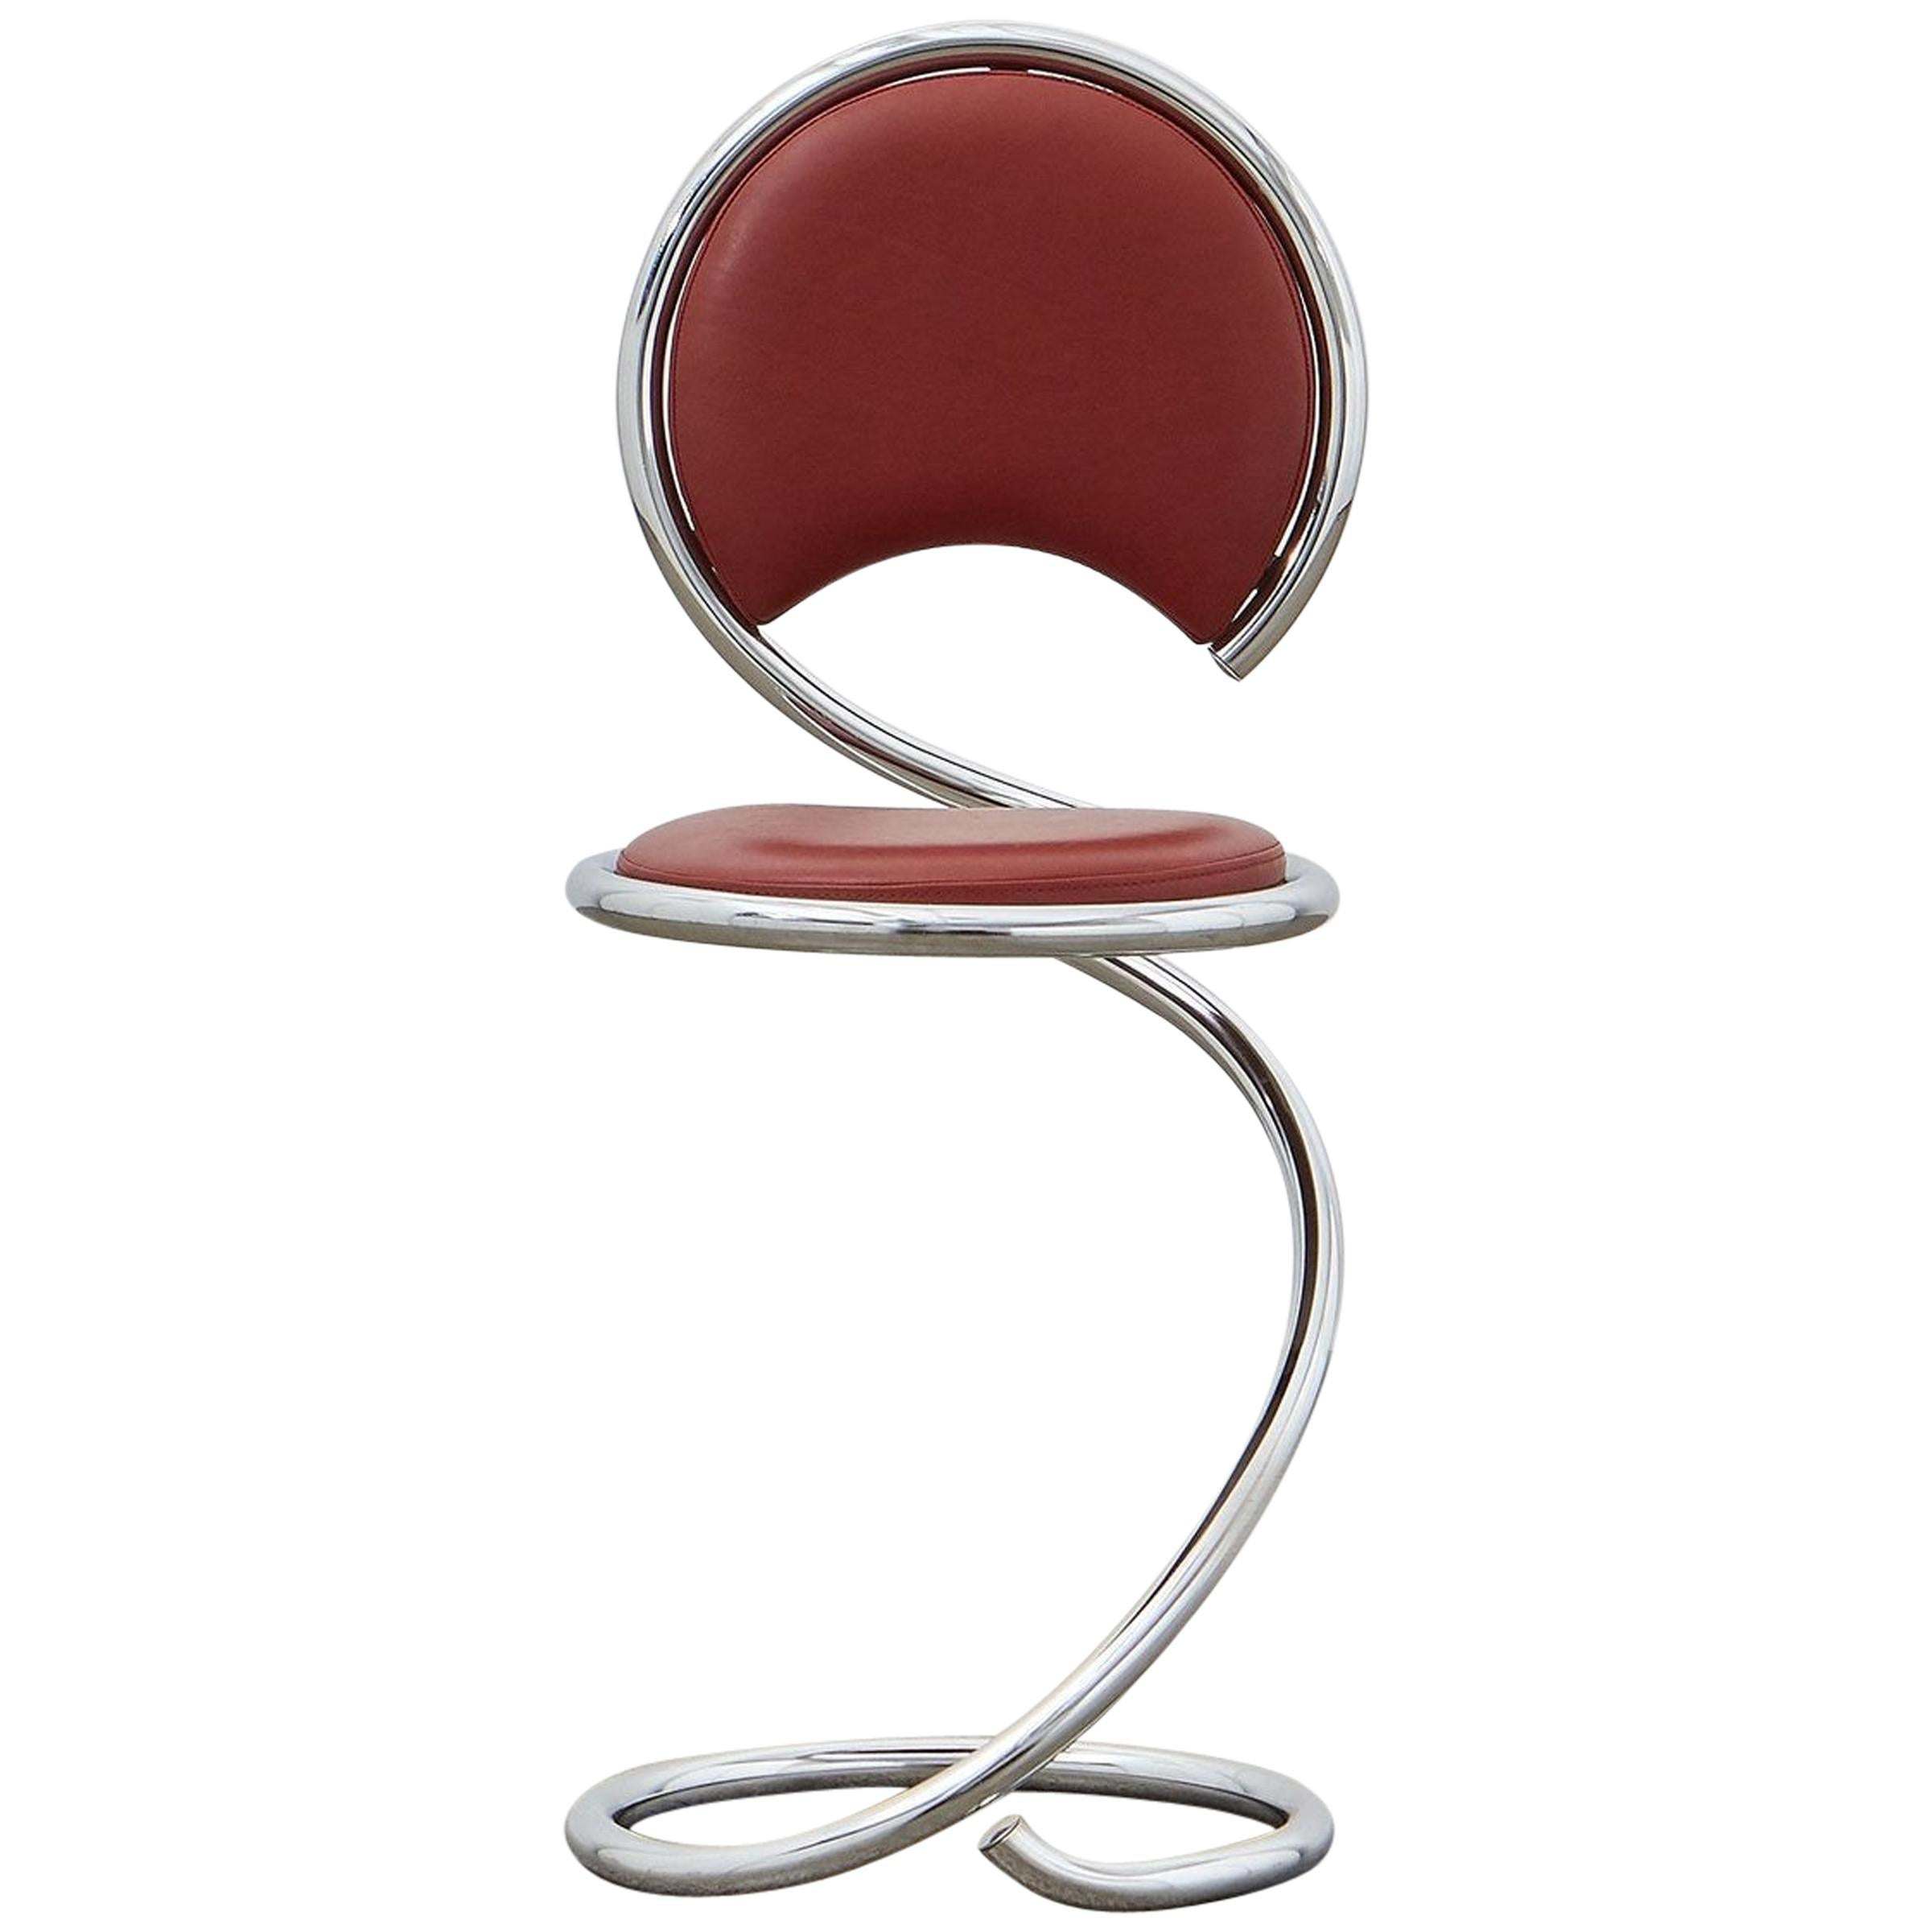 PH Snake Chair, Chrome, Leather Extreme Indianred, Leather Upholstery, Visible